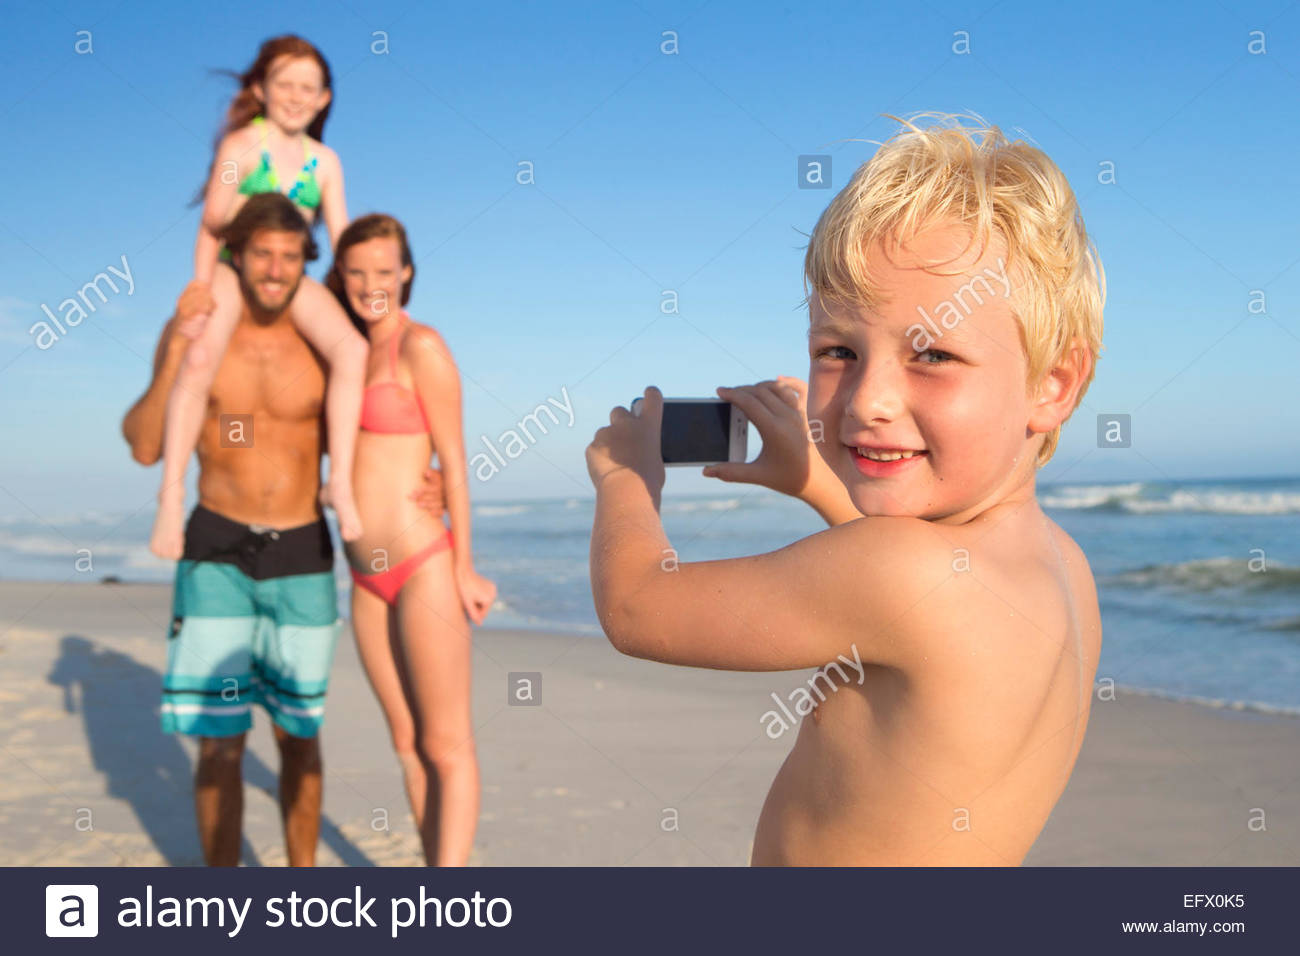 Boy, smiling at camera, photo de famille sur sunny beach Photo Stock